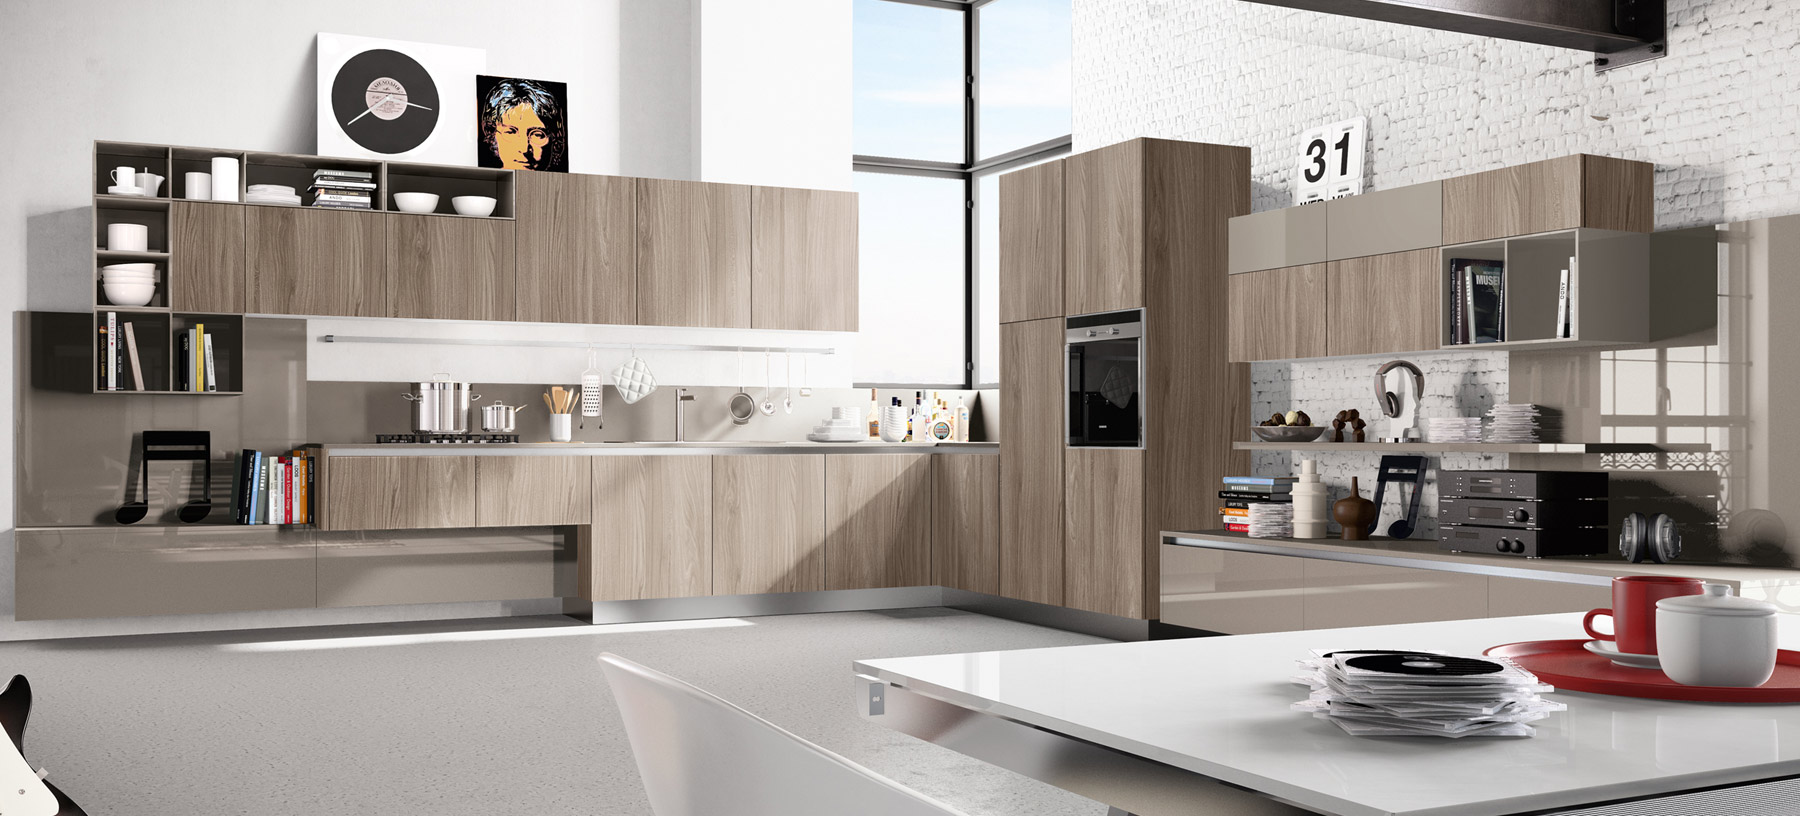 Kitchen designs that pop Modern kitchen design tips